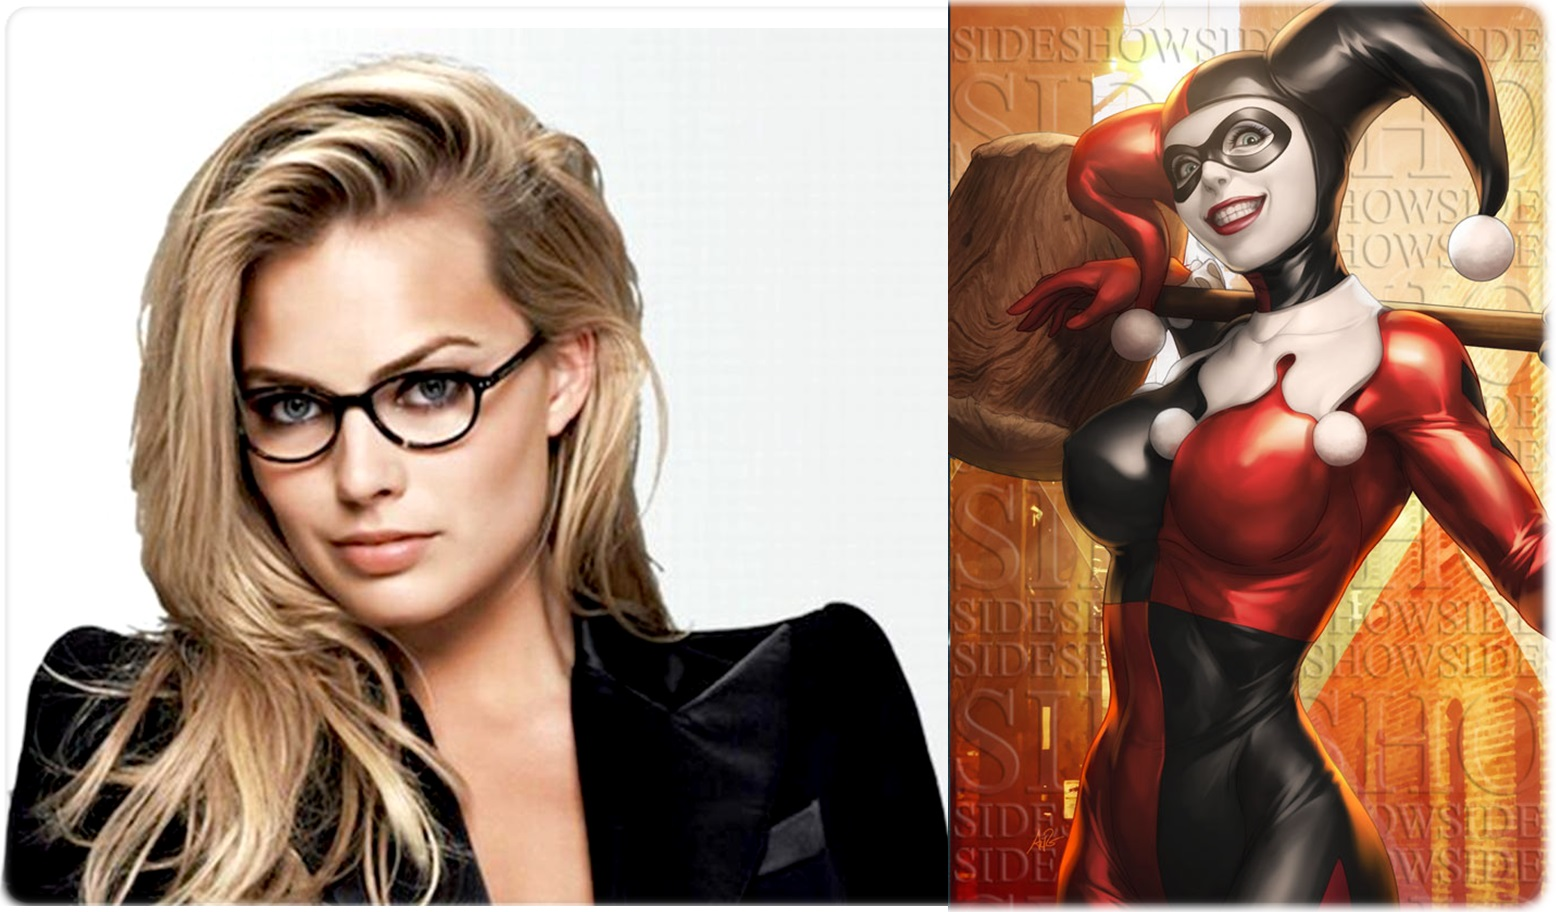 pictures Margot Robbie, Cara Delevingne, and Jared Leto Get Crazy in the Official Suicide Squad'Trailer